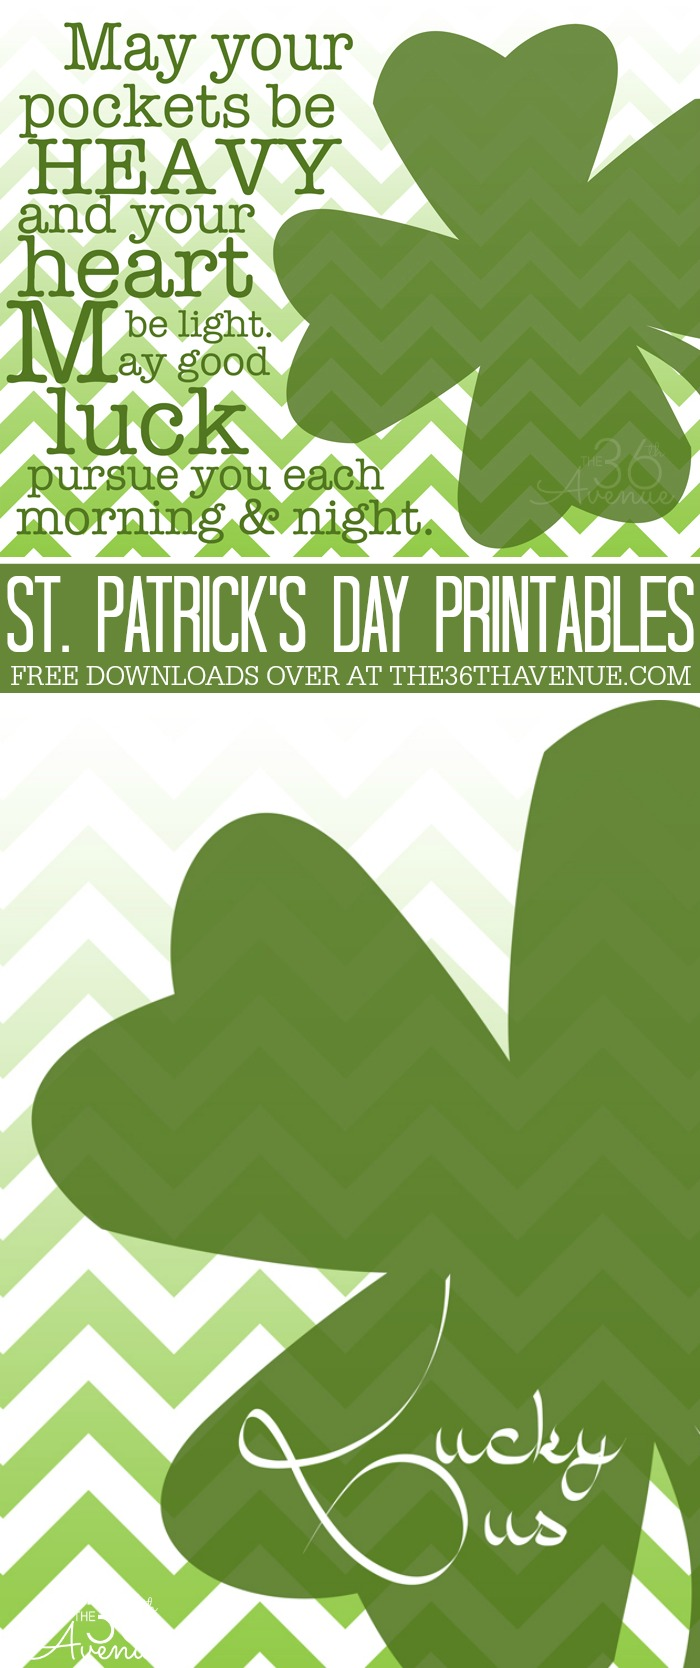 St. Patrick's Day Printables - These are perfect to decorate for the luckiest day of the year!